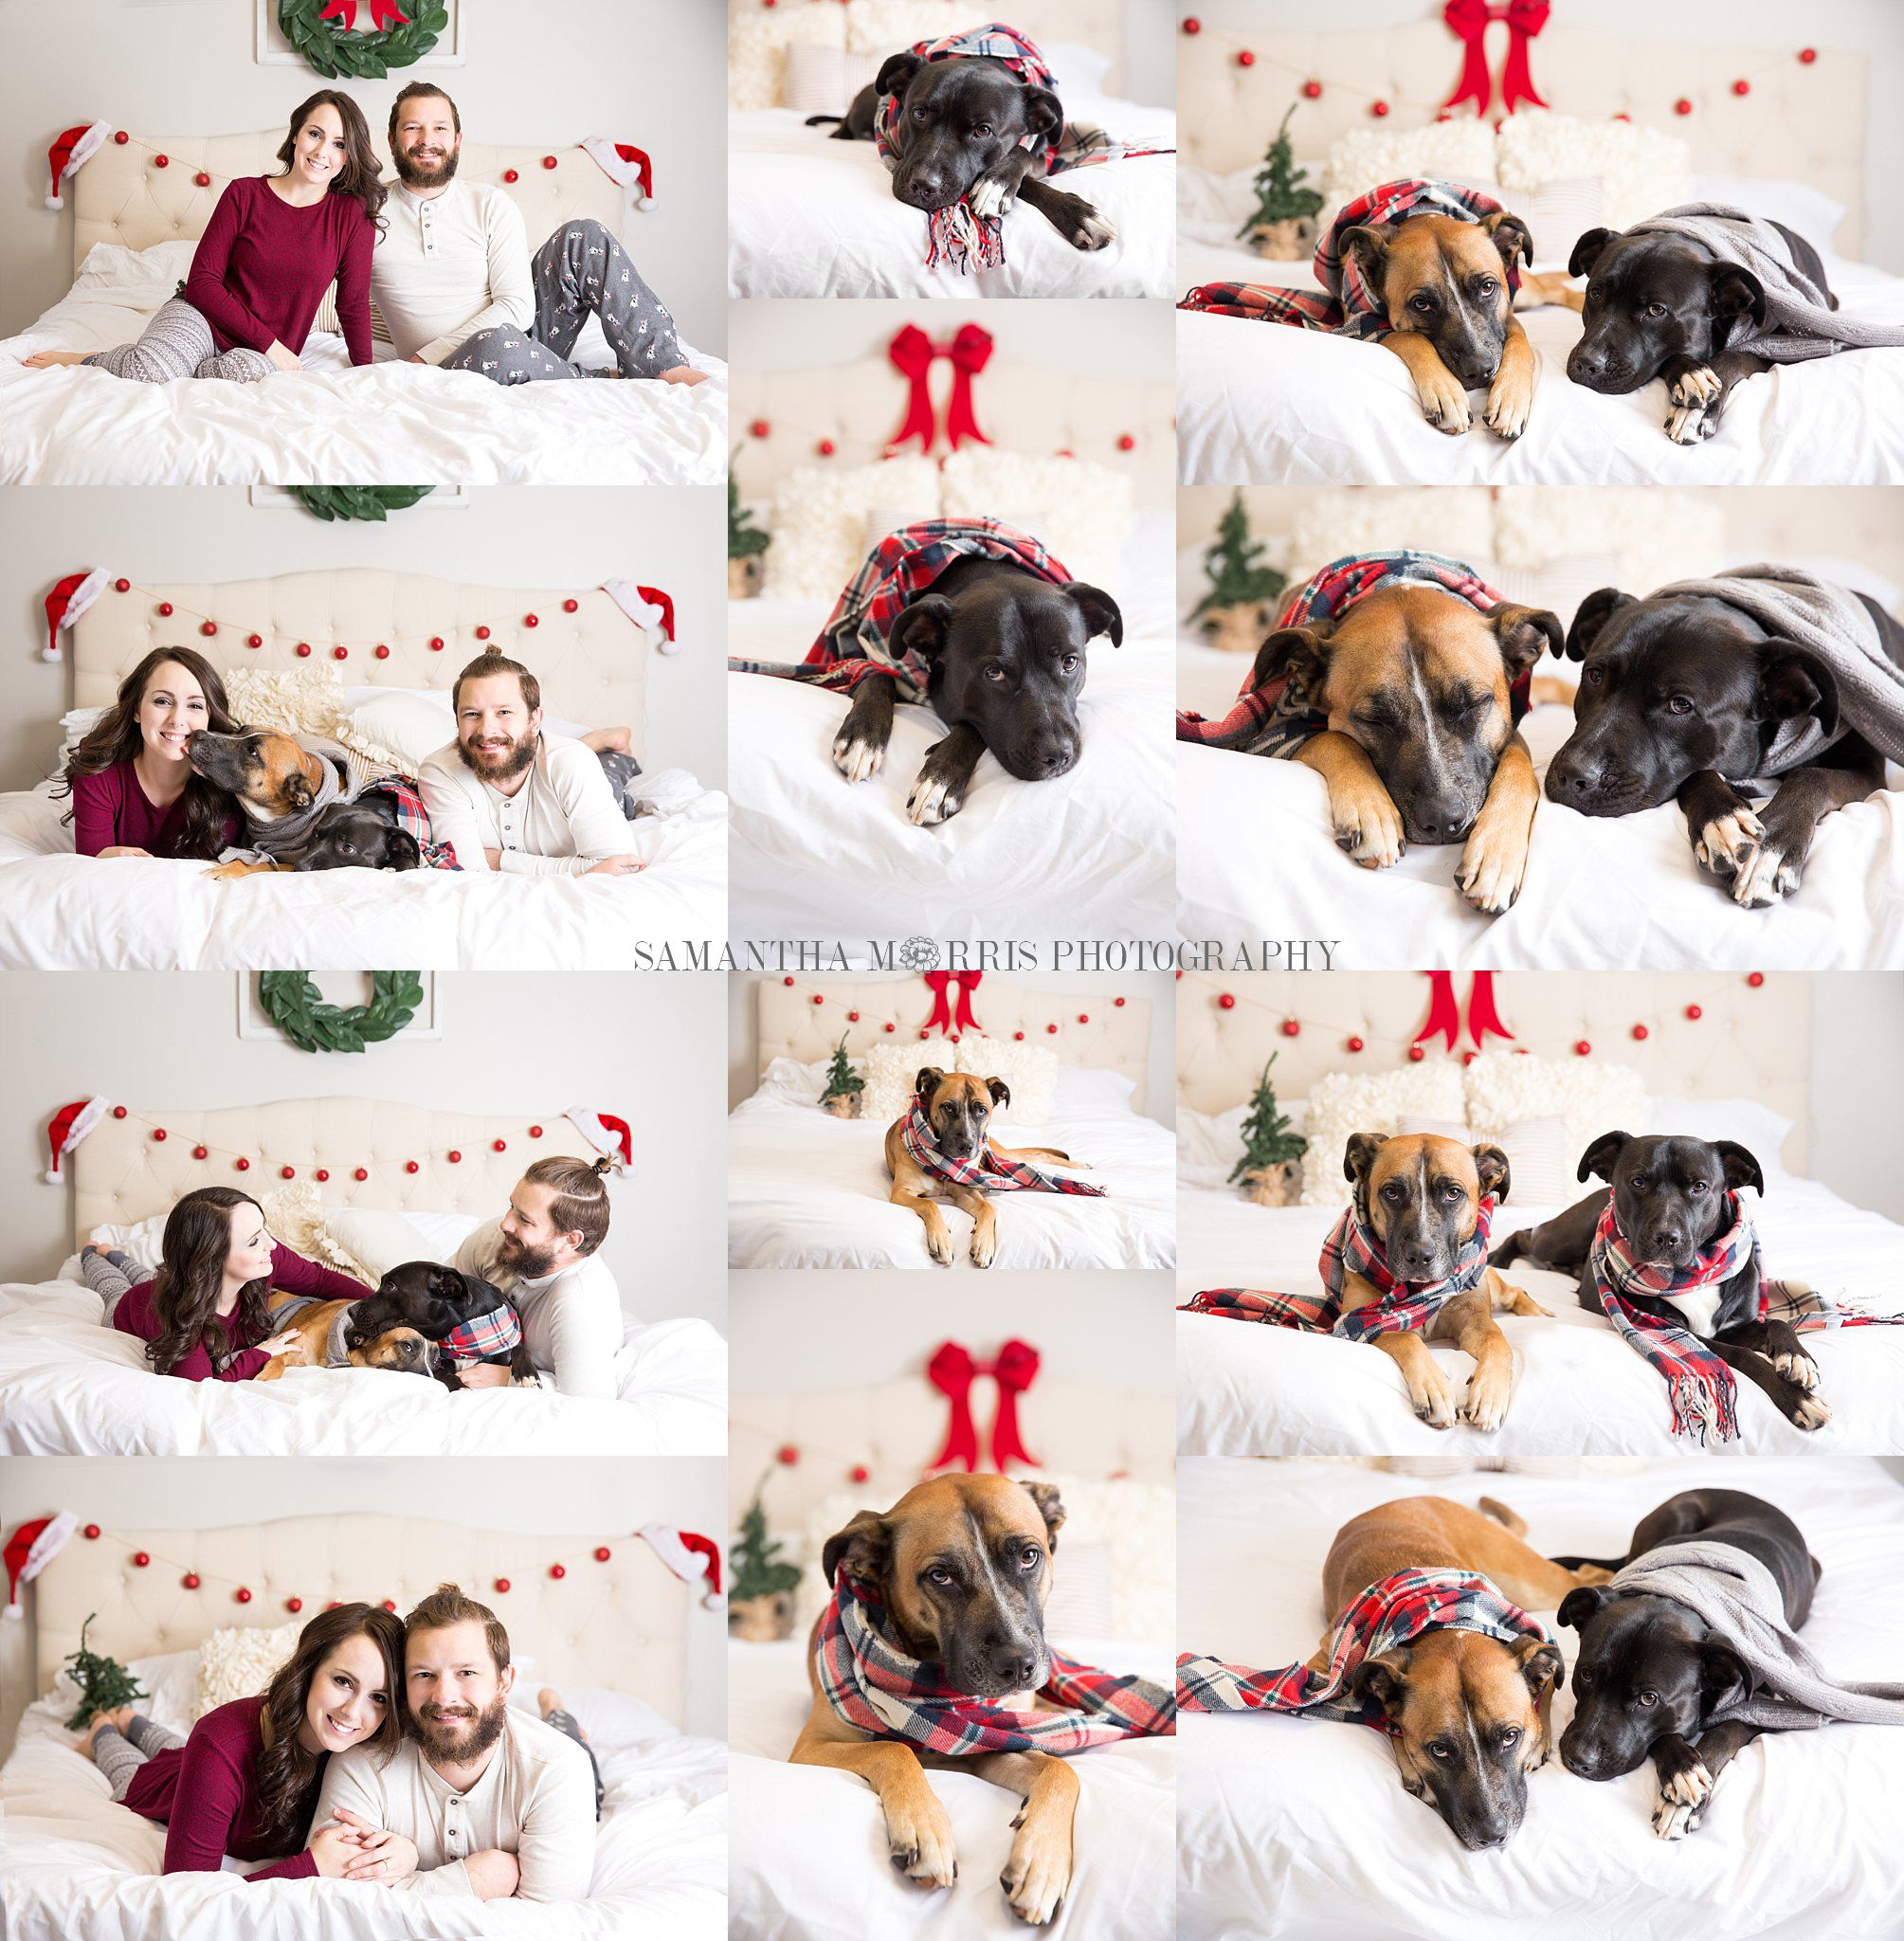 Family Christmas Picture With Dogs